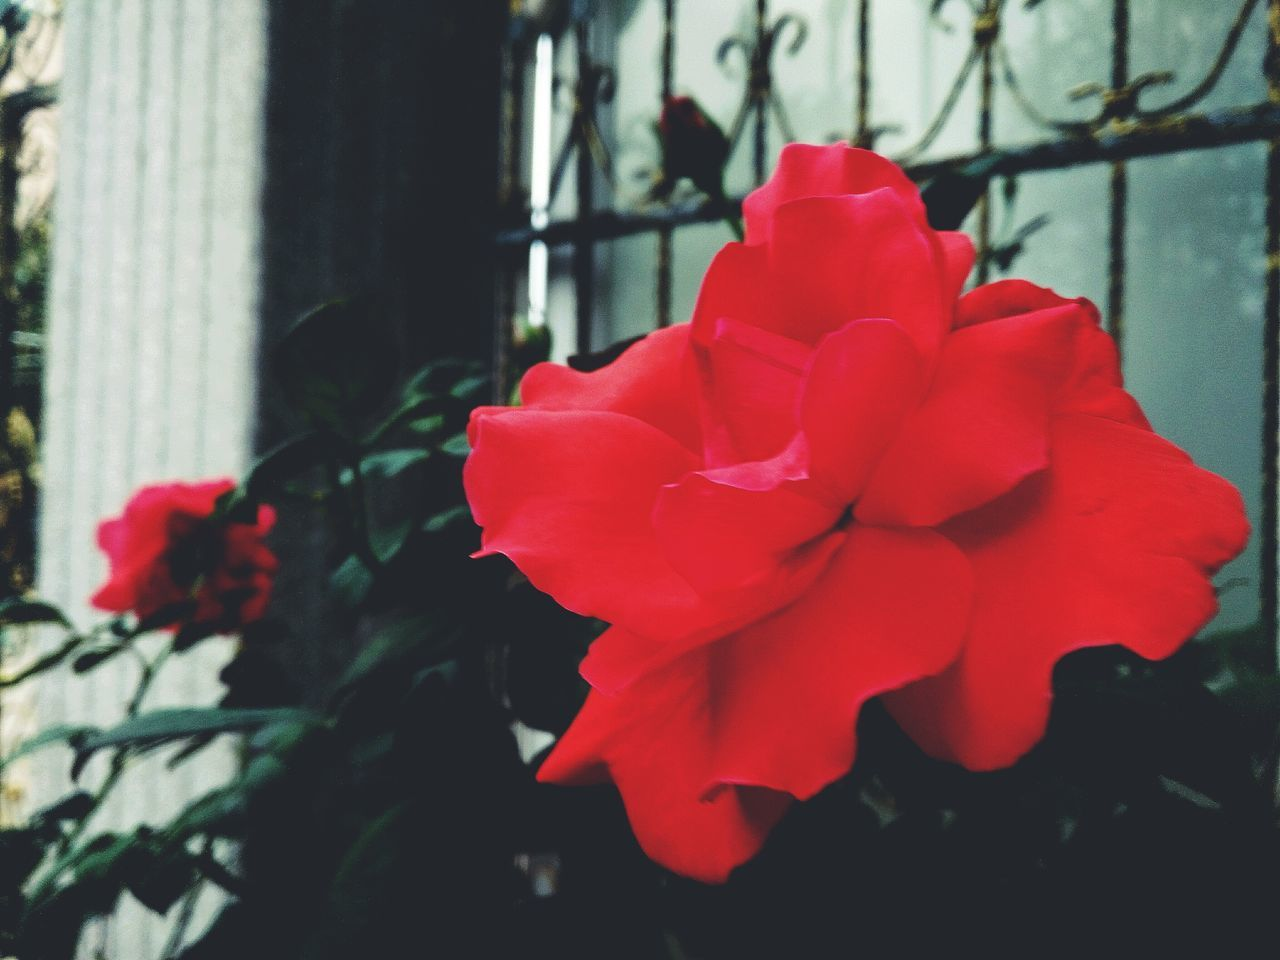 flower, petal, fragility, beauty in nature, flower head, rose - flower, nature, red, freshness, growth, blooming, close-up, day, plant, no people, outdoors, hibiscus